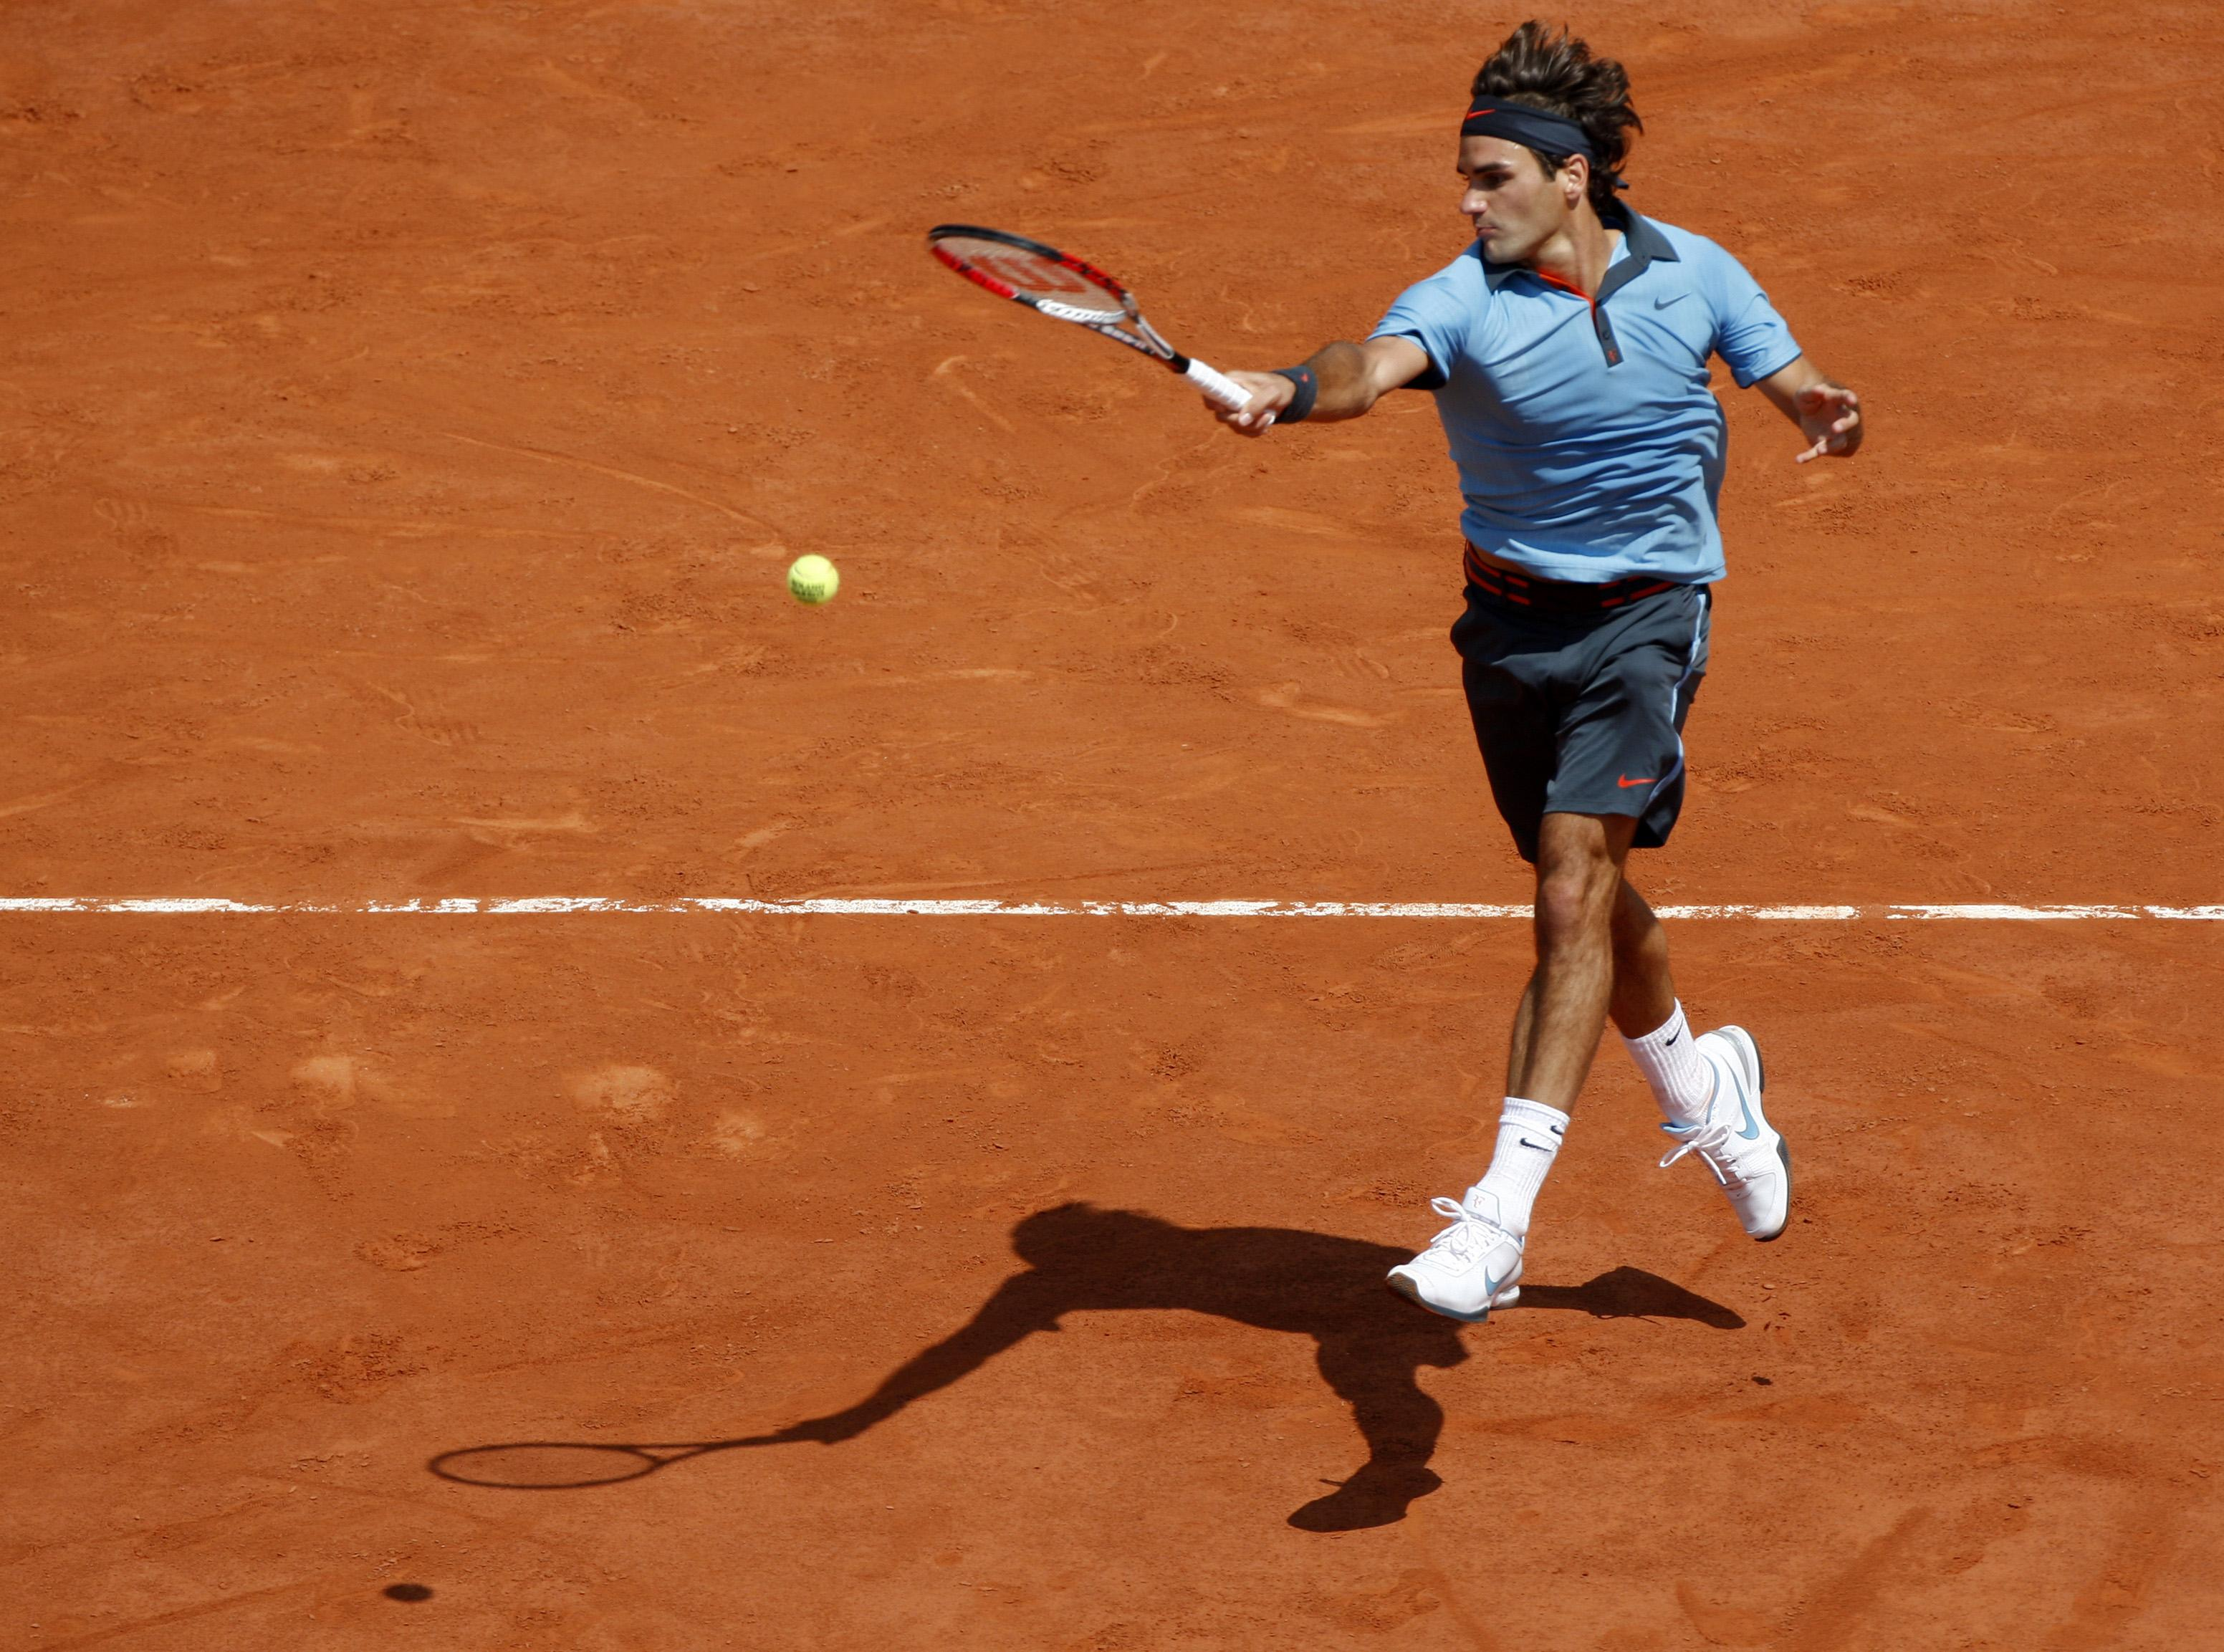 Federer against del Potro. Image courtesy: paulocleto